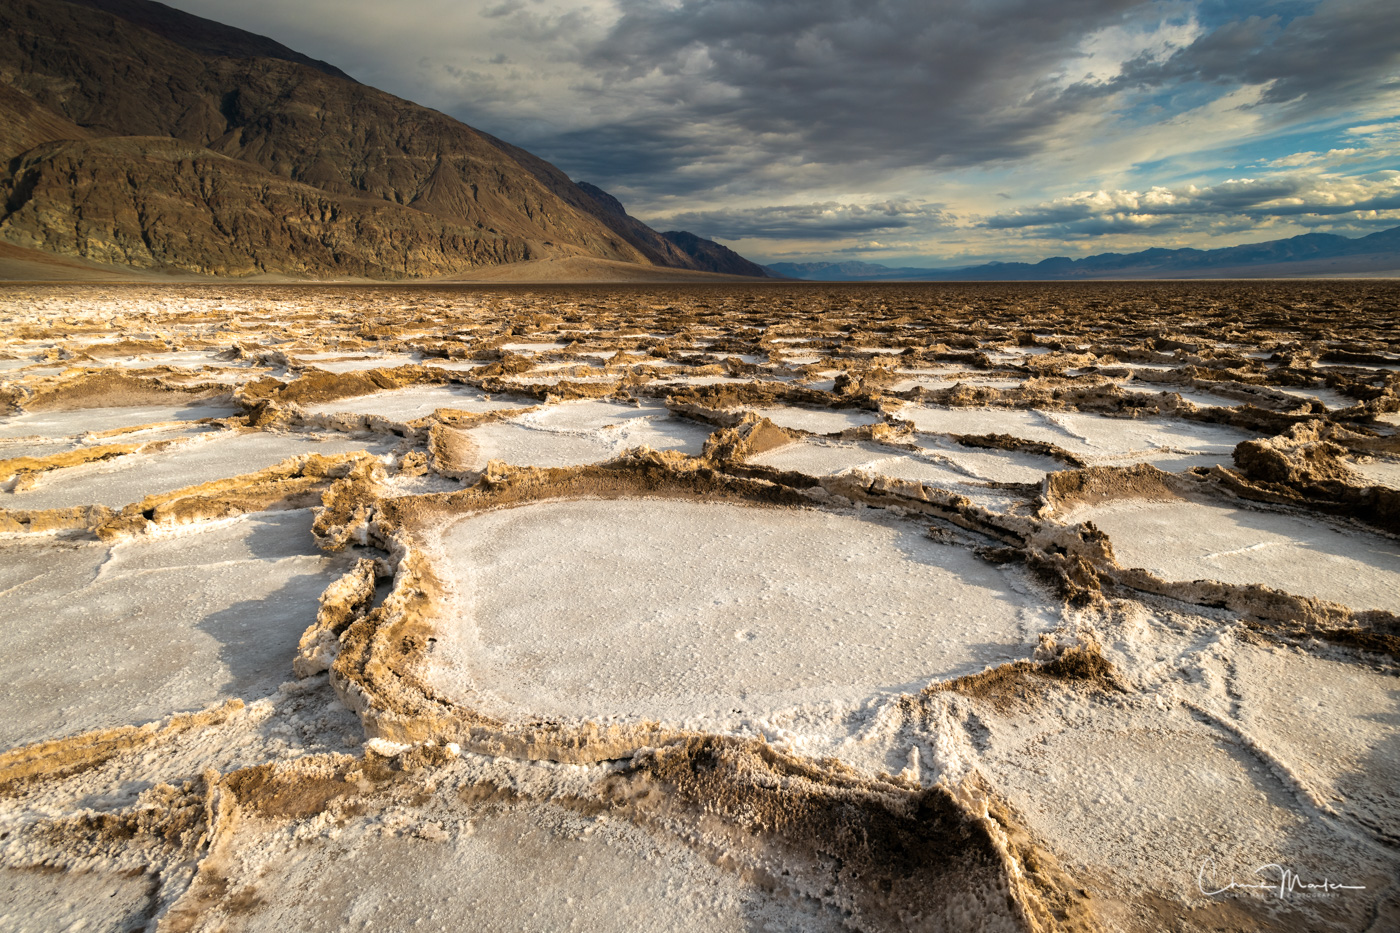 Death Valley, California, Badwater Basin, salt flats, desert, southwest, photo